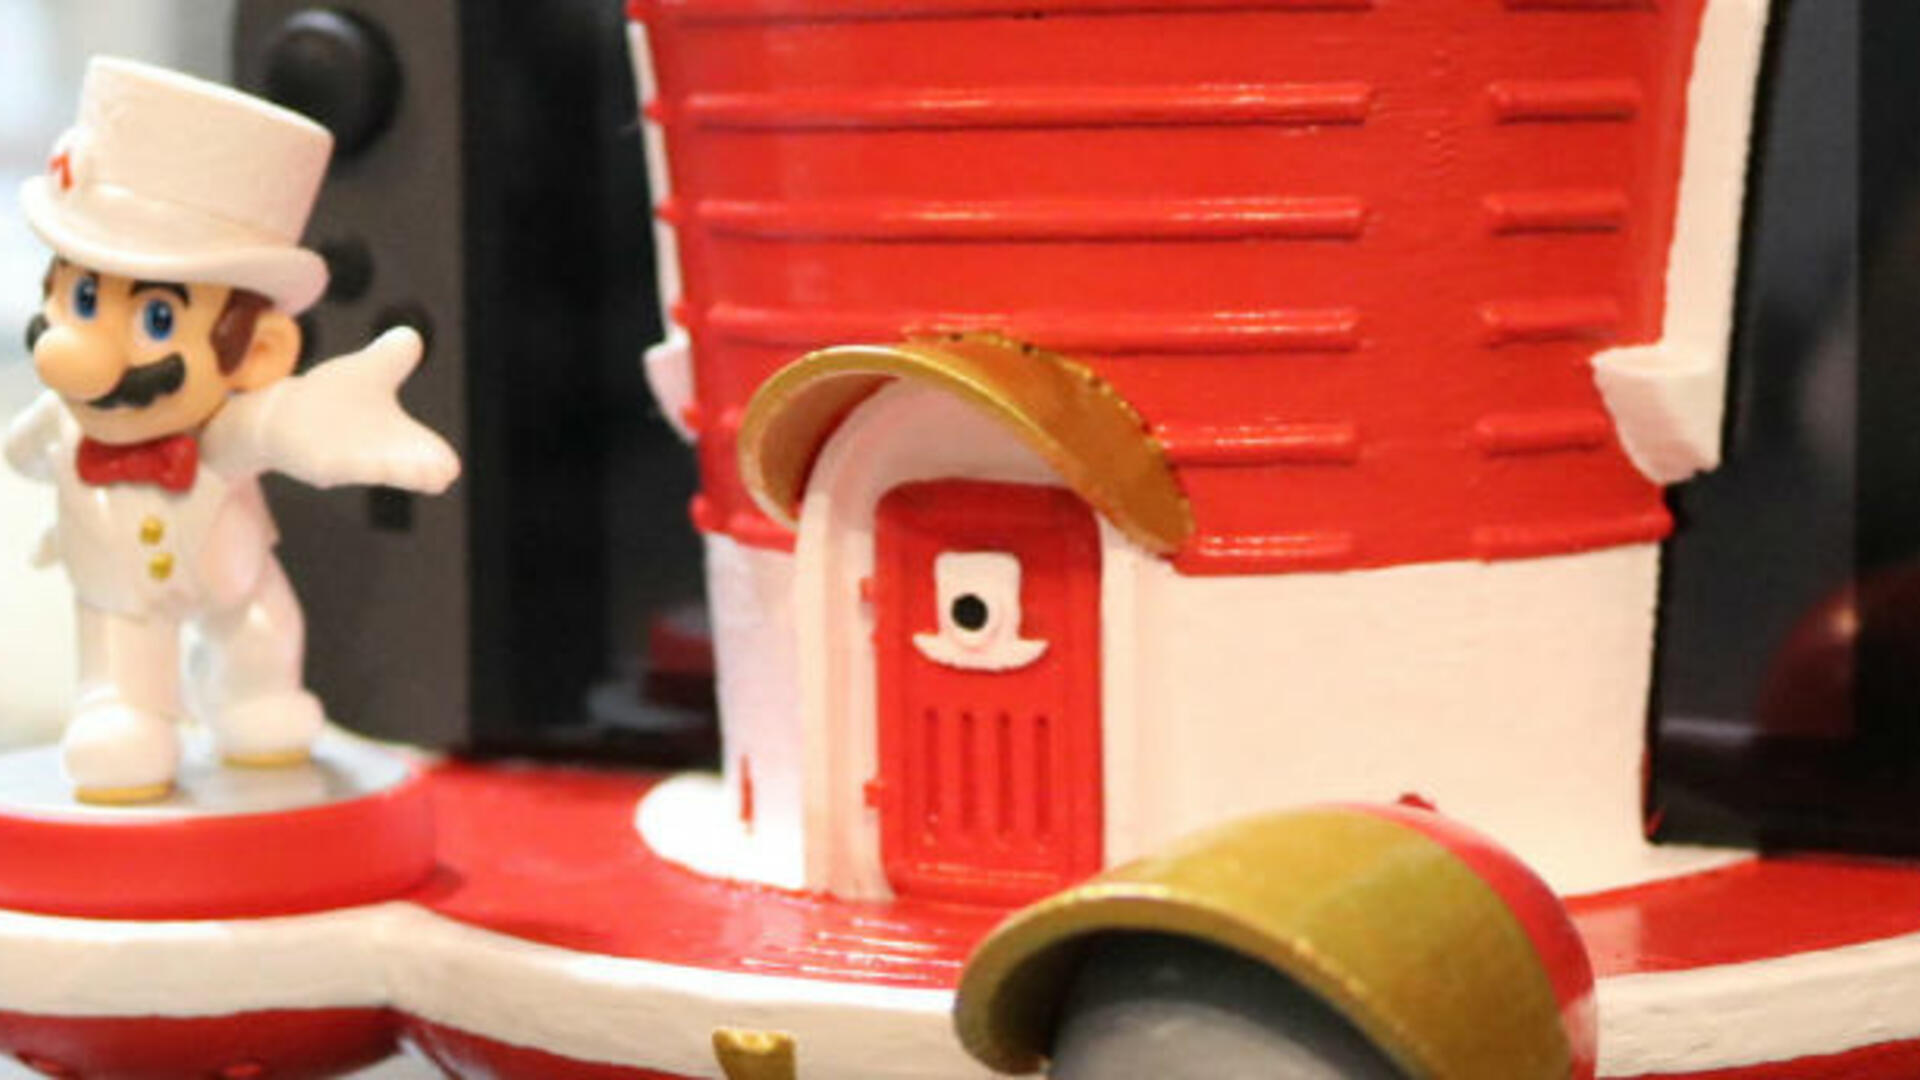 Take Your Nintendo Switch to New Heights with This Super Mario Odyssey Dock